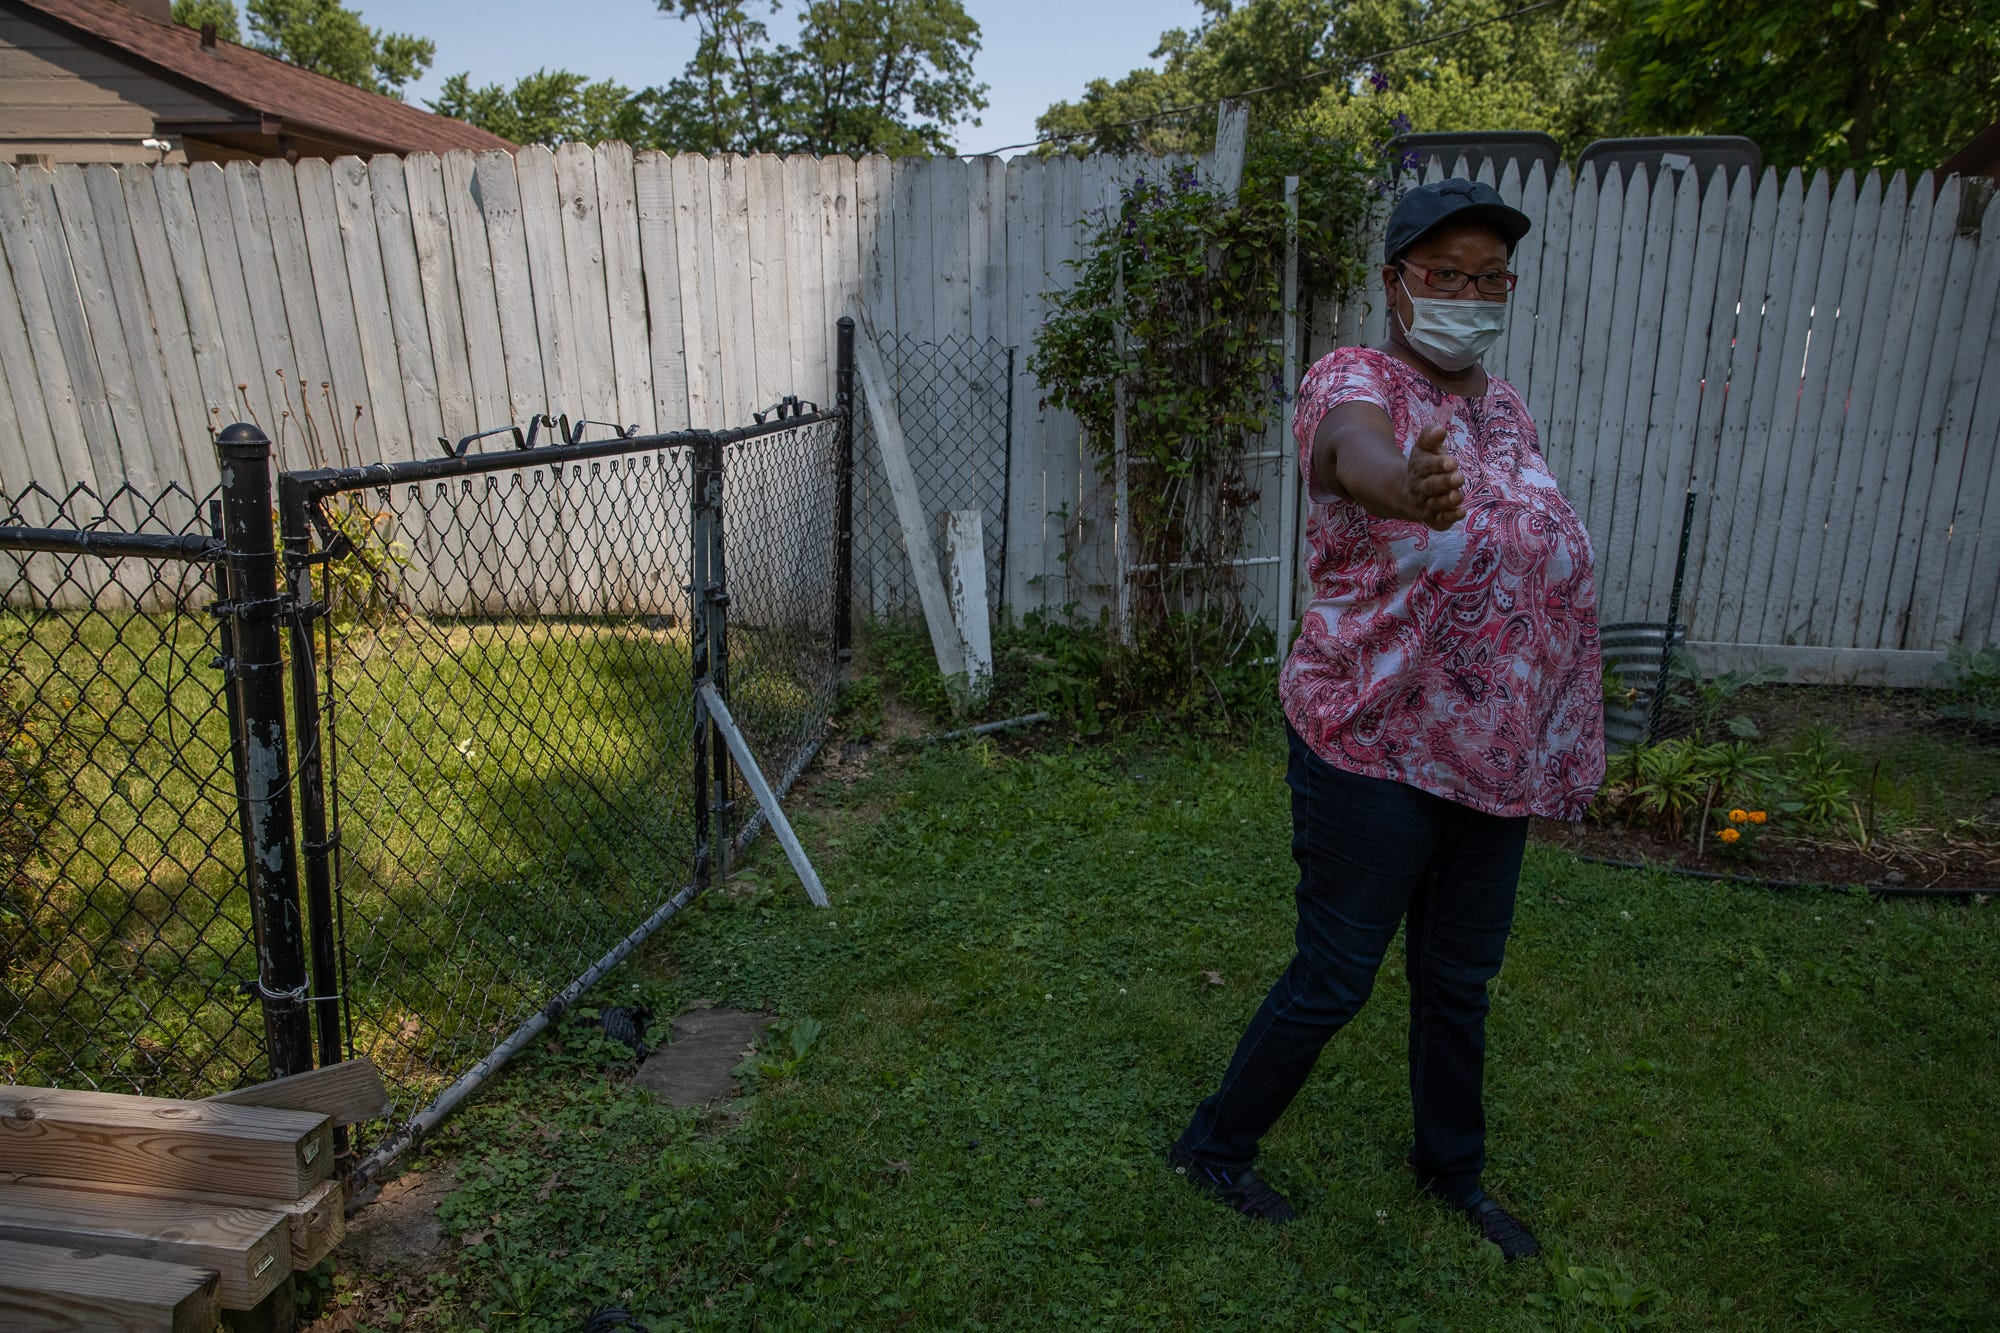 """Ella White, daughter of Gordon Mitchum, points out the path an IMPD K-9 officer walked outside Mitchum's home when searching for a suspect in a carjacking that ended on Mitchum's street, on Monday, July 6, 2020. """"This is the way he always keeps the fence, so they had to have jumped over the fence,"""" she said. White then described using bleach and water to clean up the mass amount of blood left on her father's patio."""